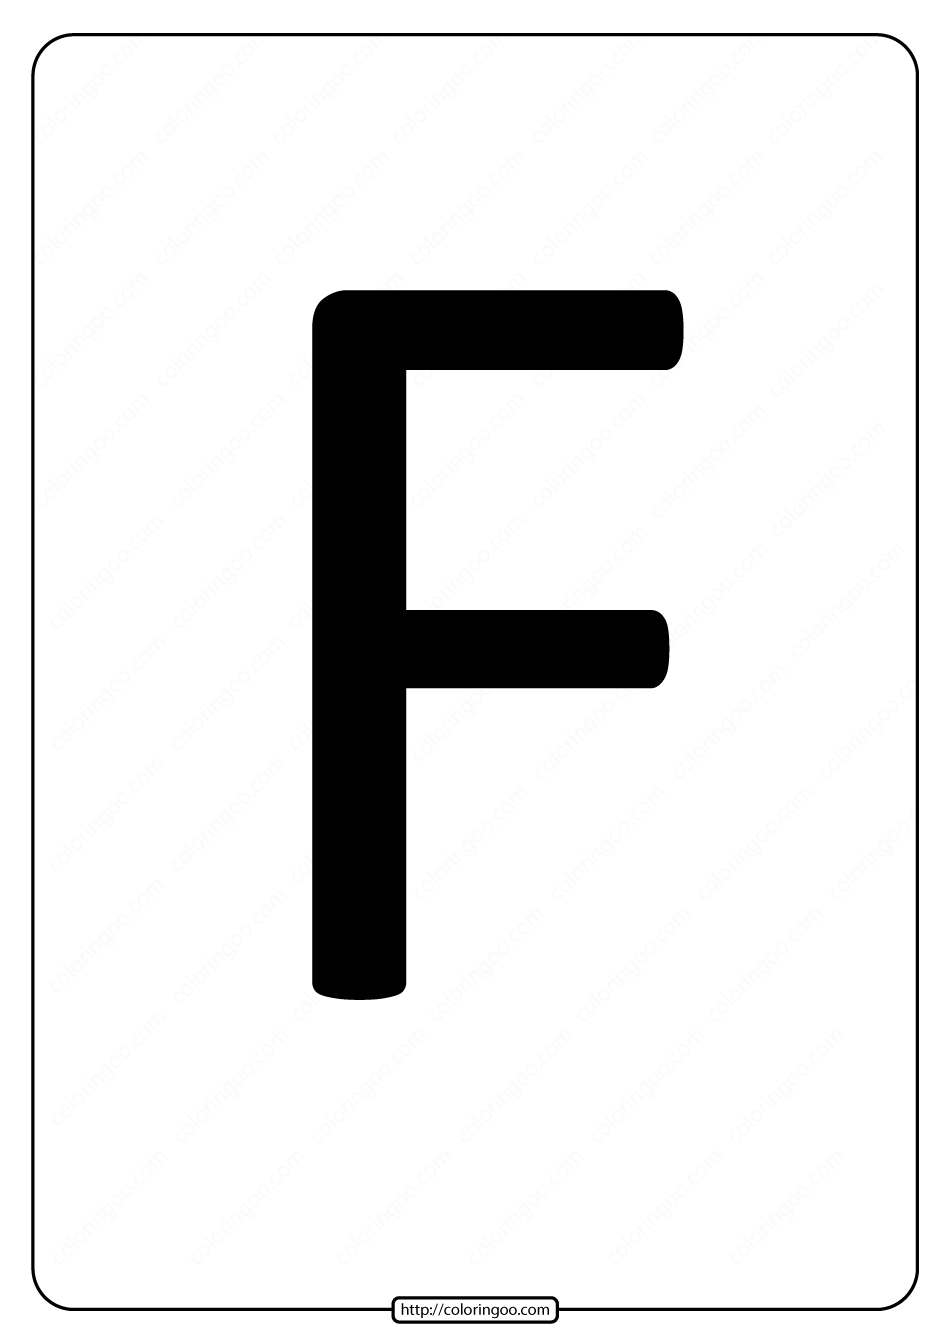 Printable A4 Size Uppercase Letters F Worksheet